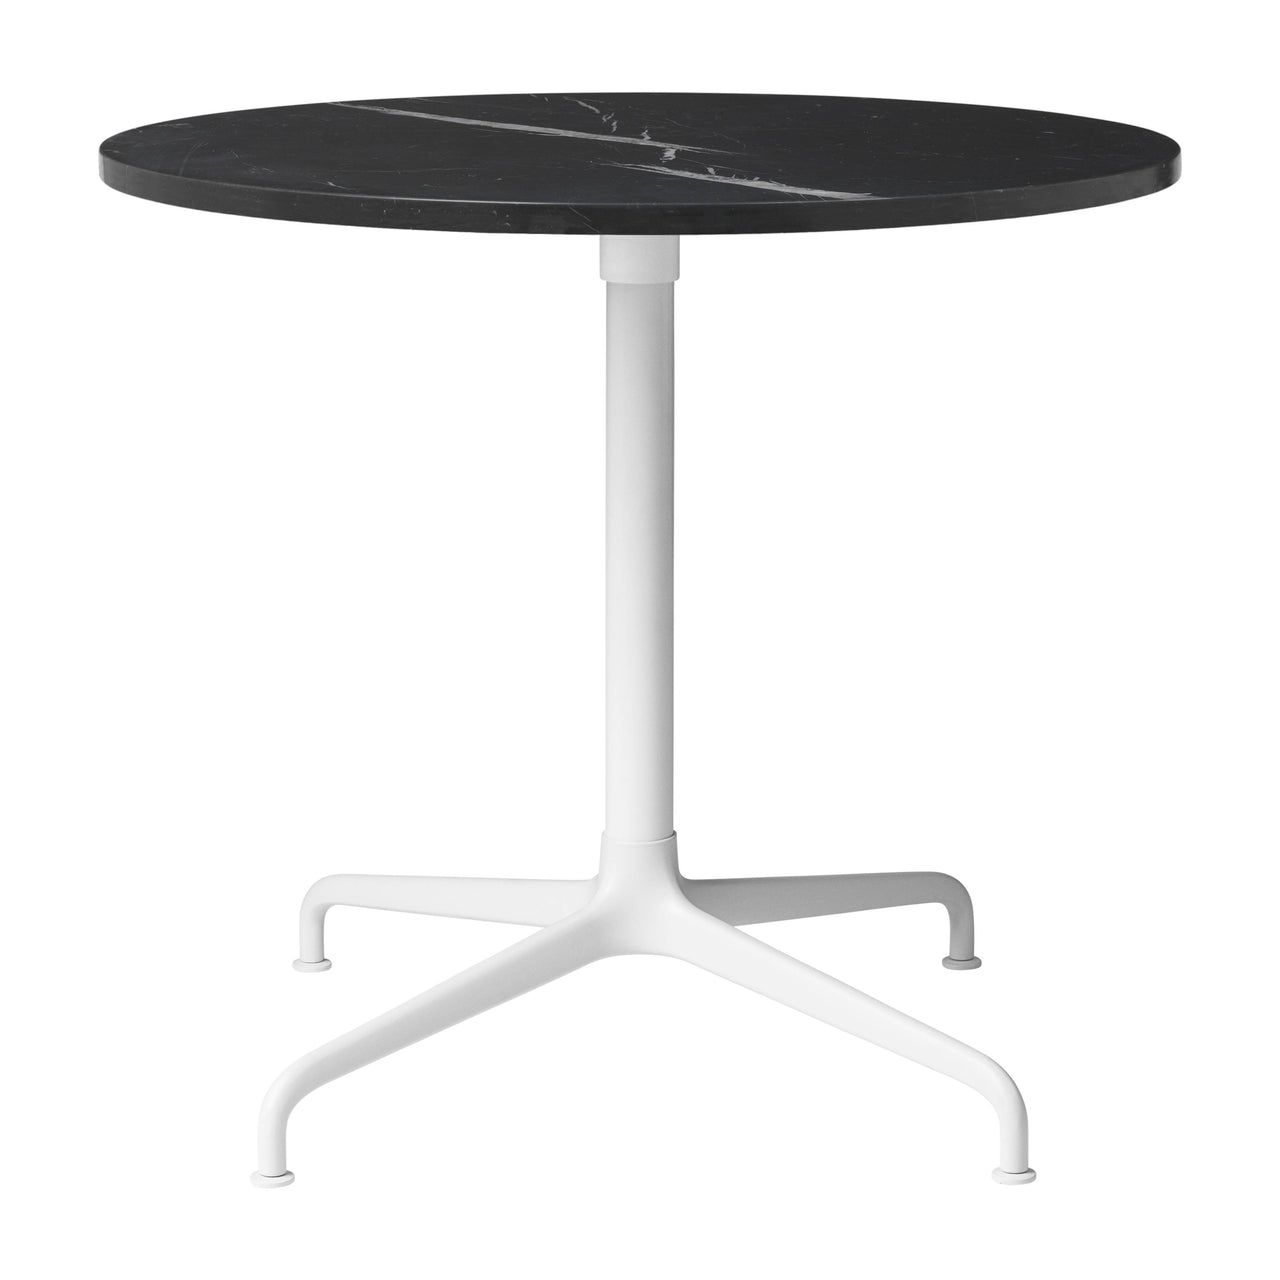 Beetle Lounge Table: Round + Small + Black Marquina Marble + Soft White Semi-Matte Base